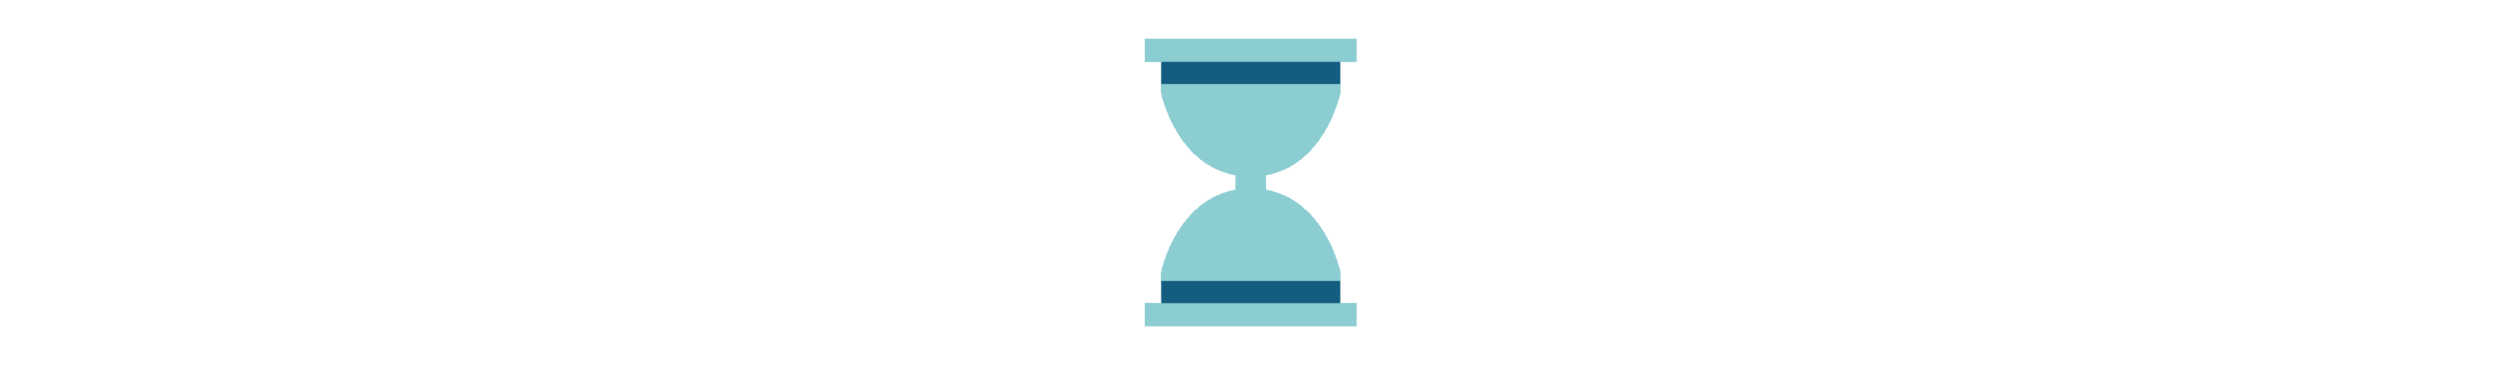 hourglass2.png